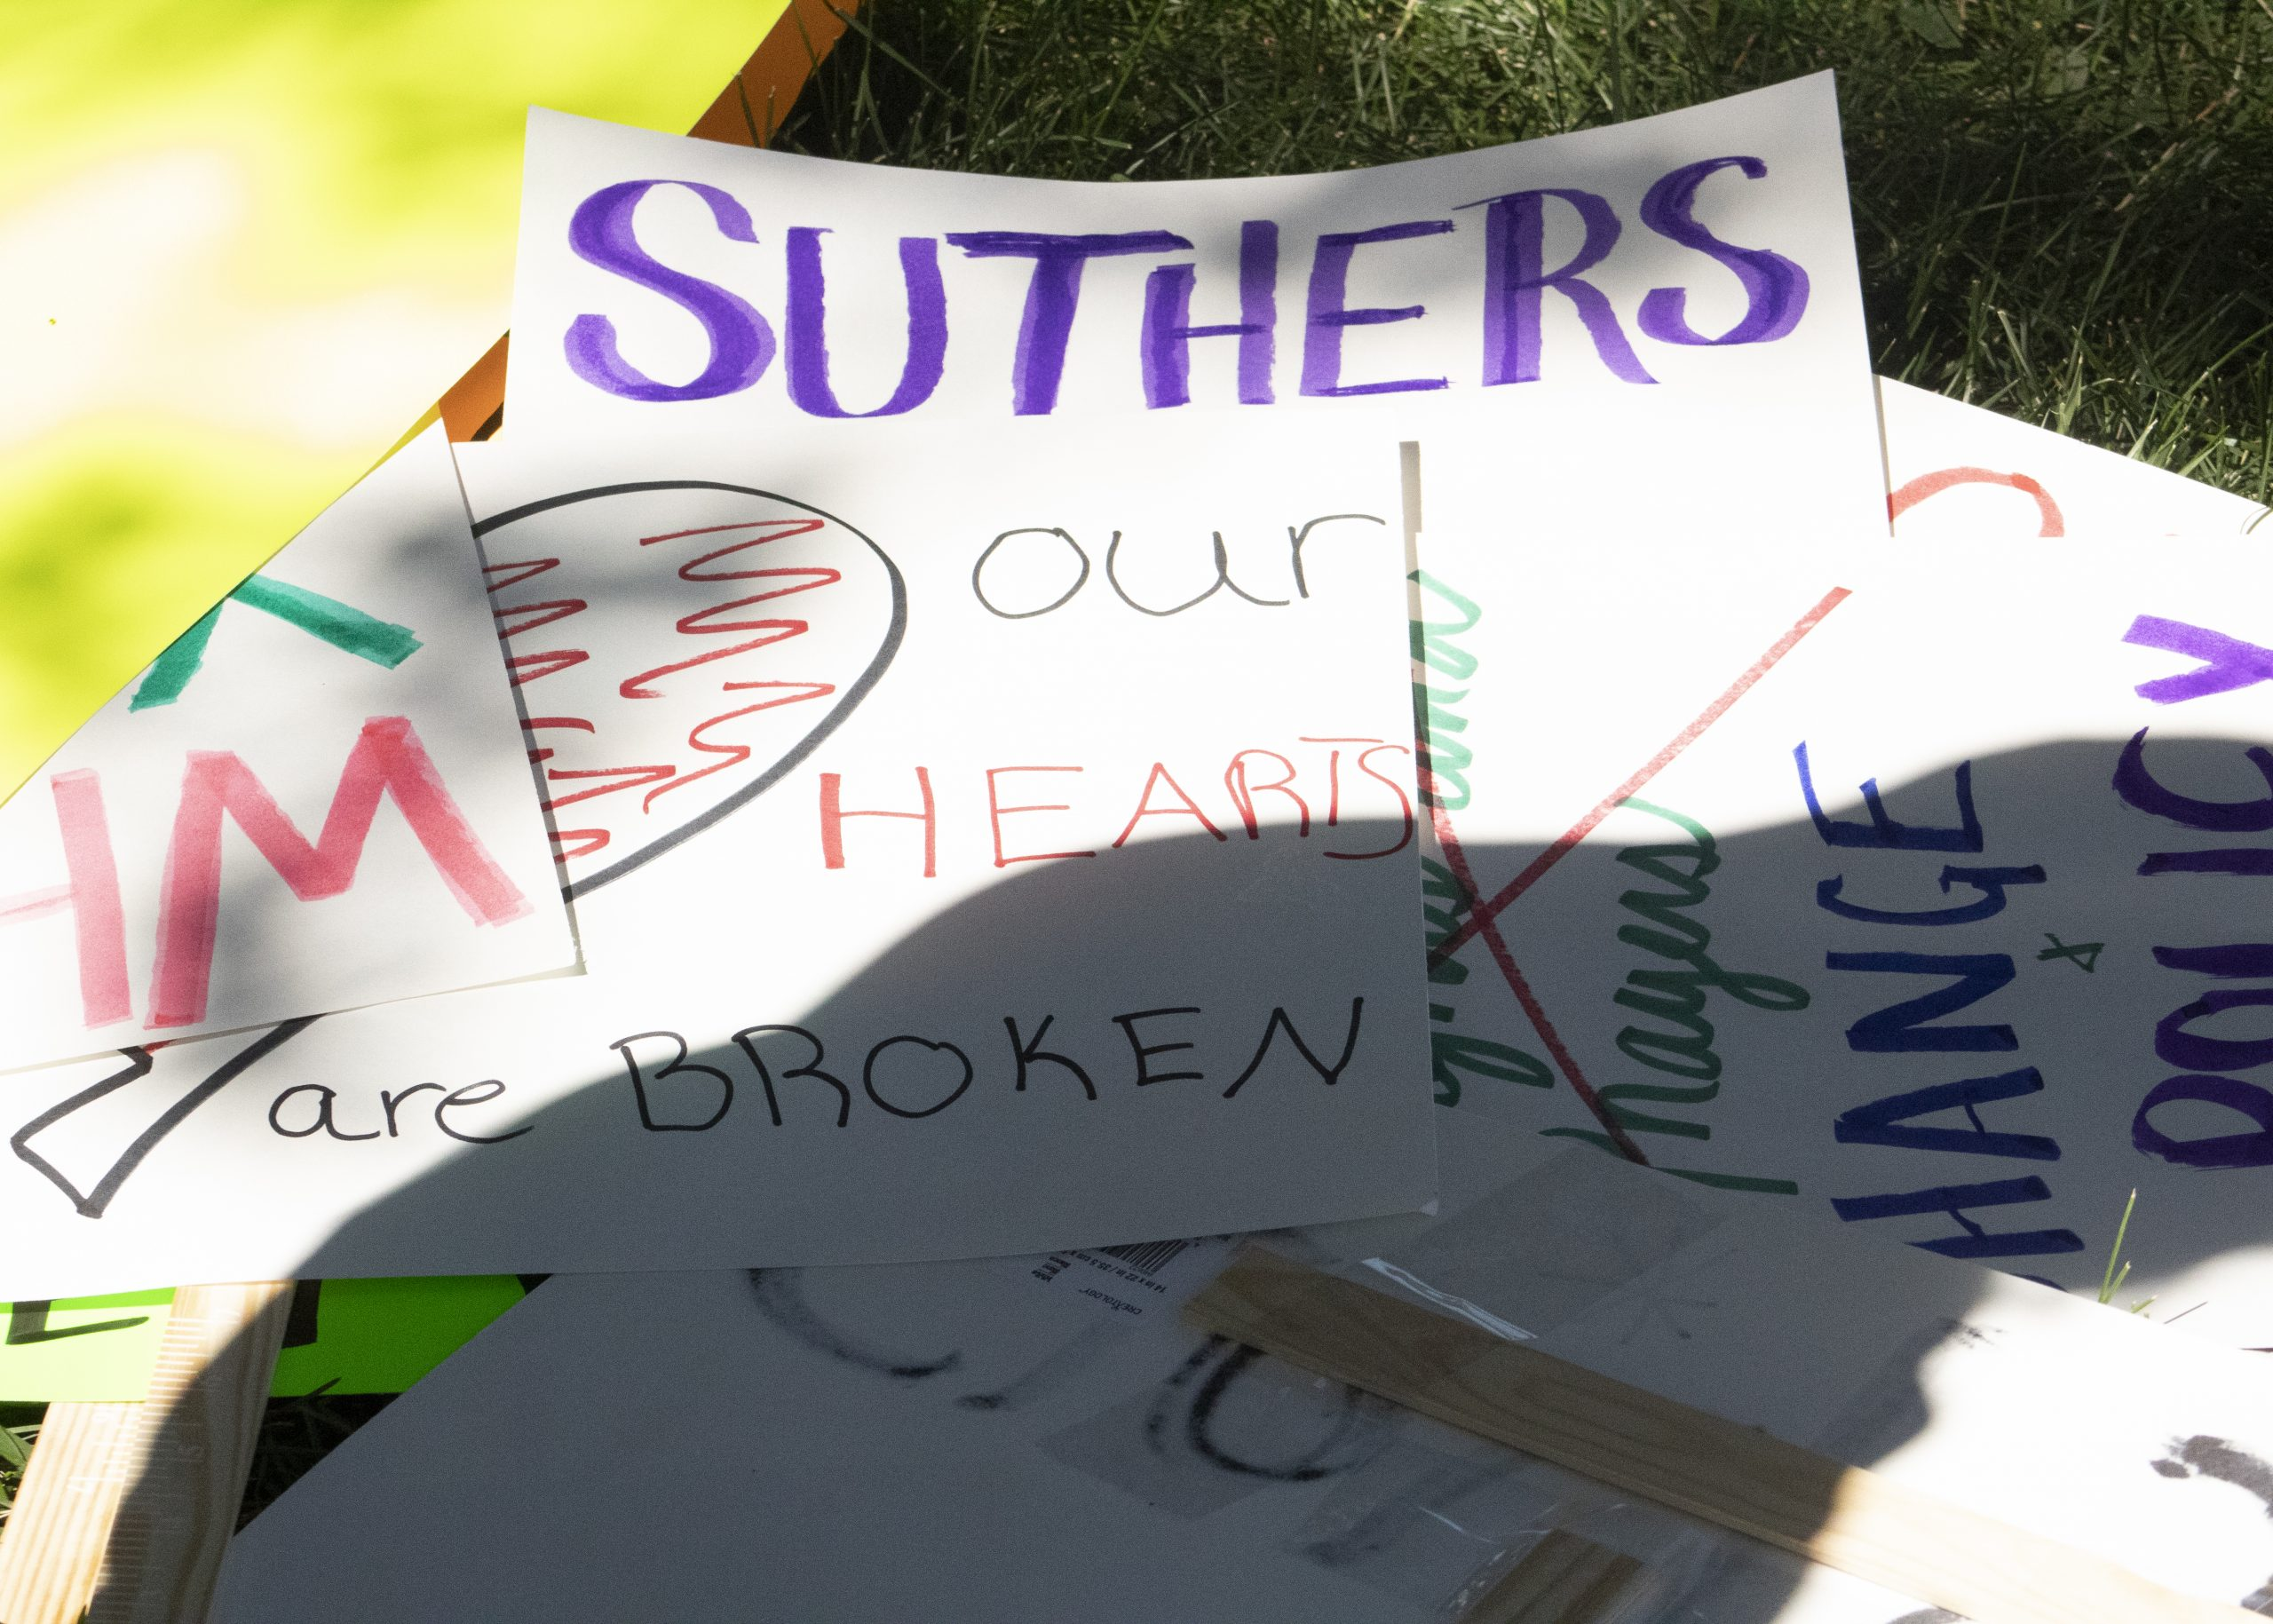 Signs at the press conference showed solidarity with the Bailey family and called out a lack of confidence in Mayor John Suthers.